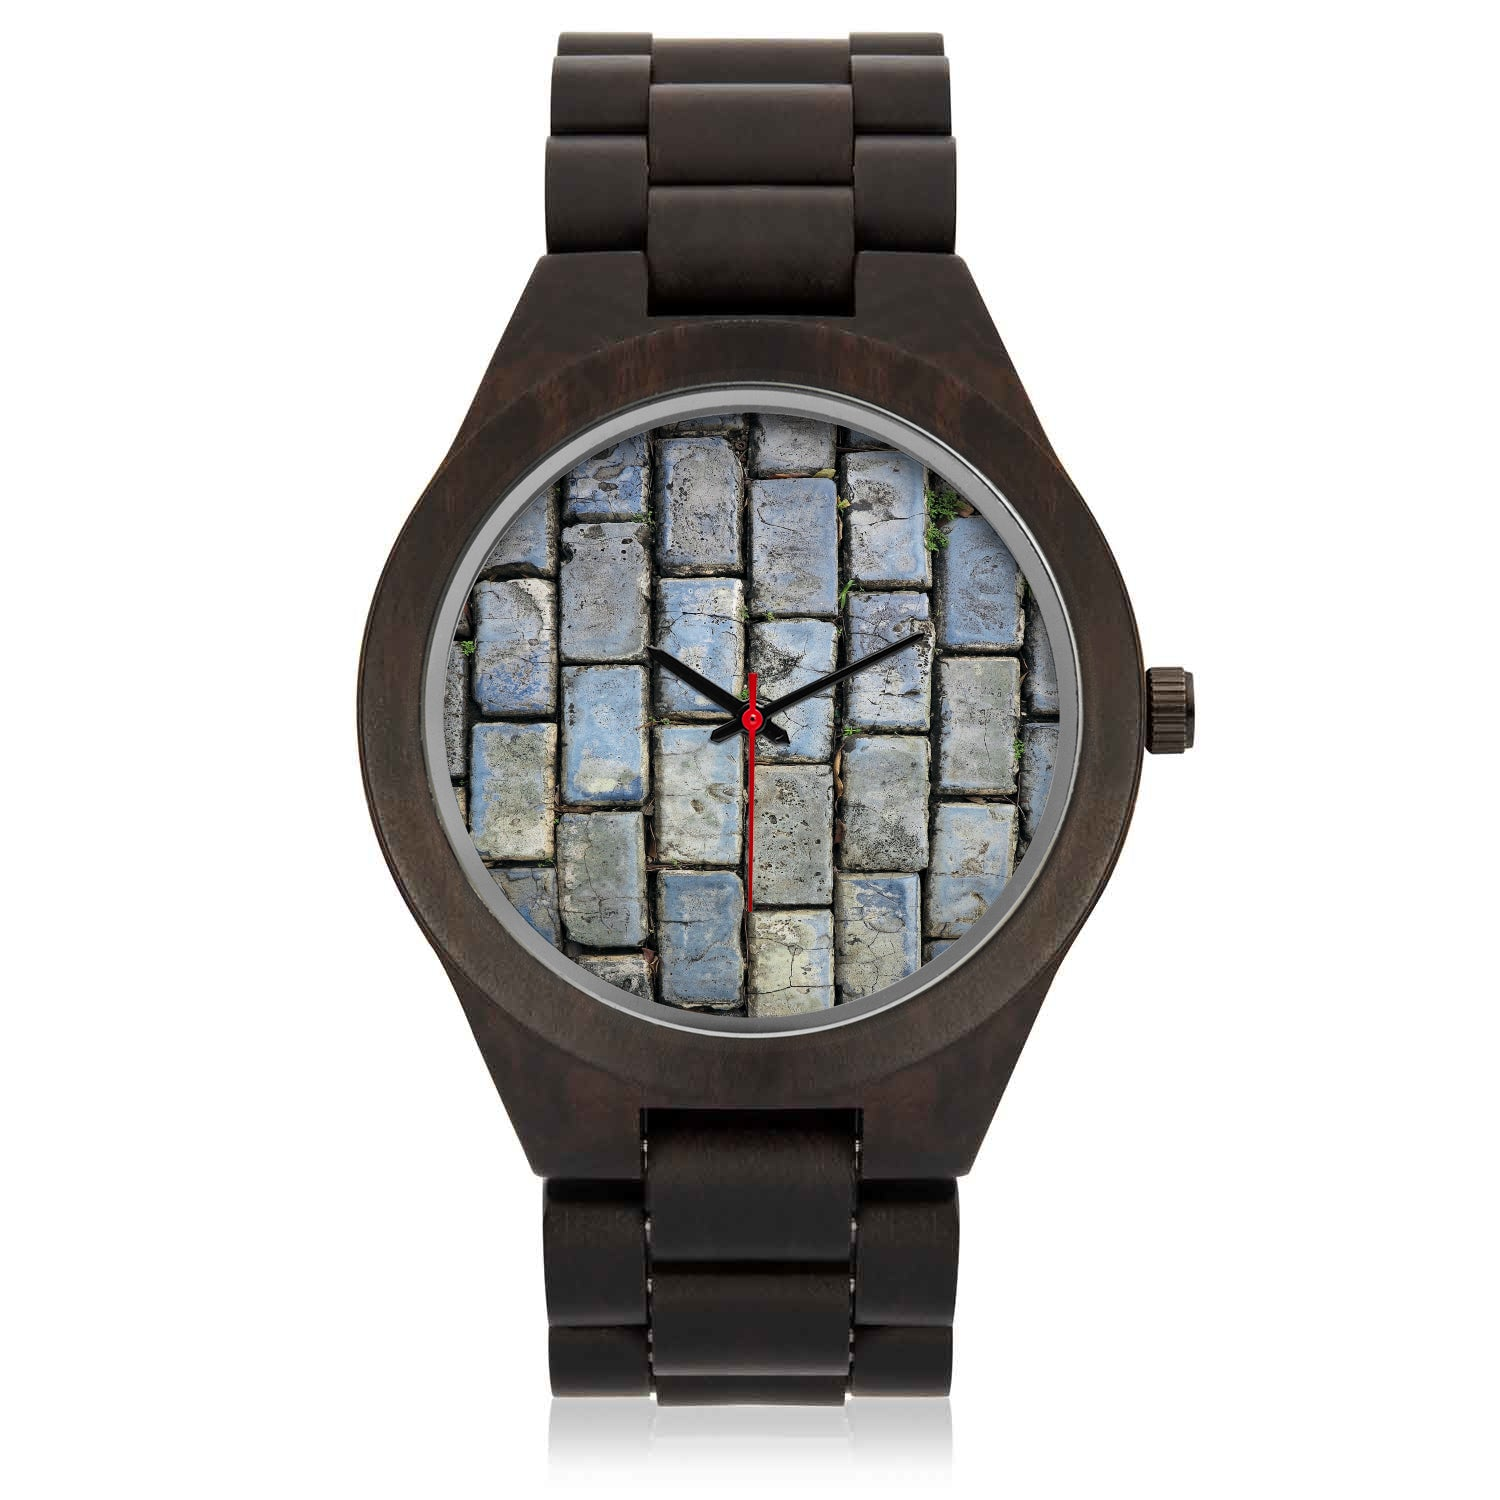 Adoquín Wood Watch - Salthy